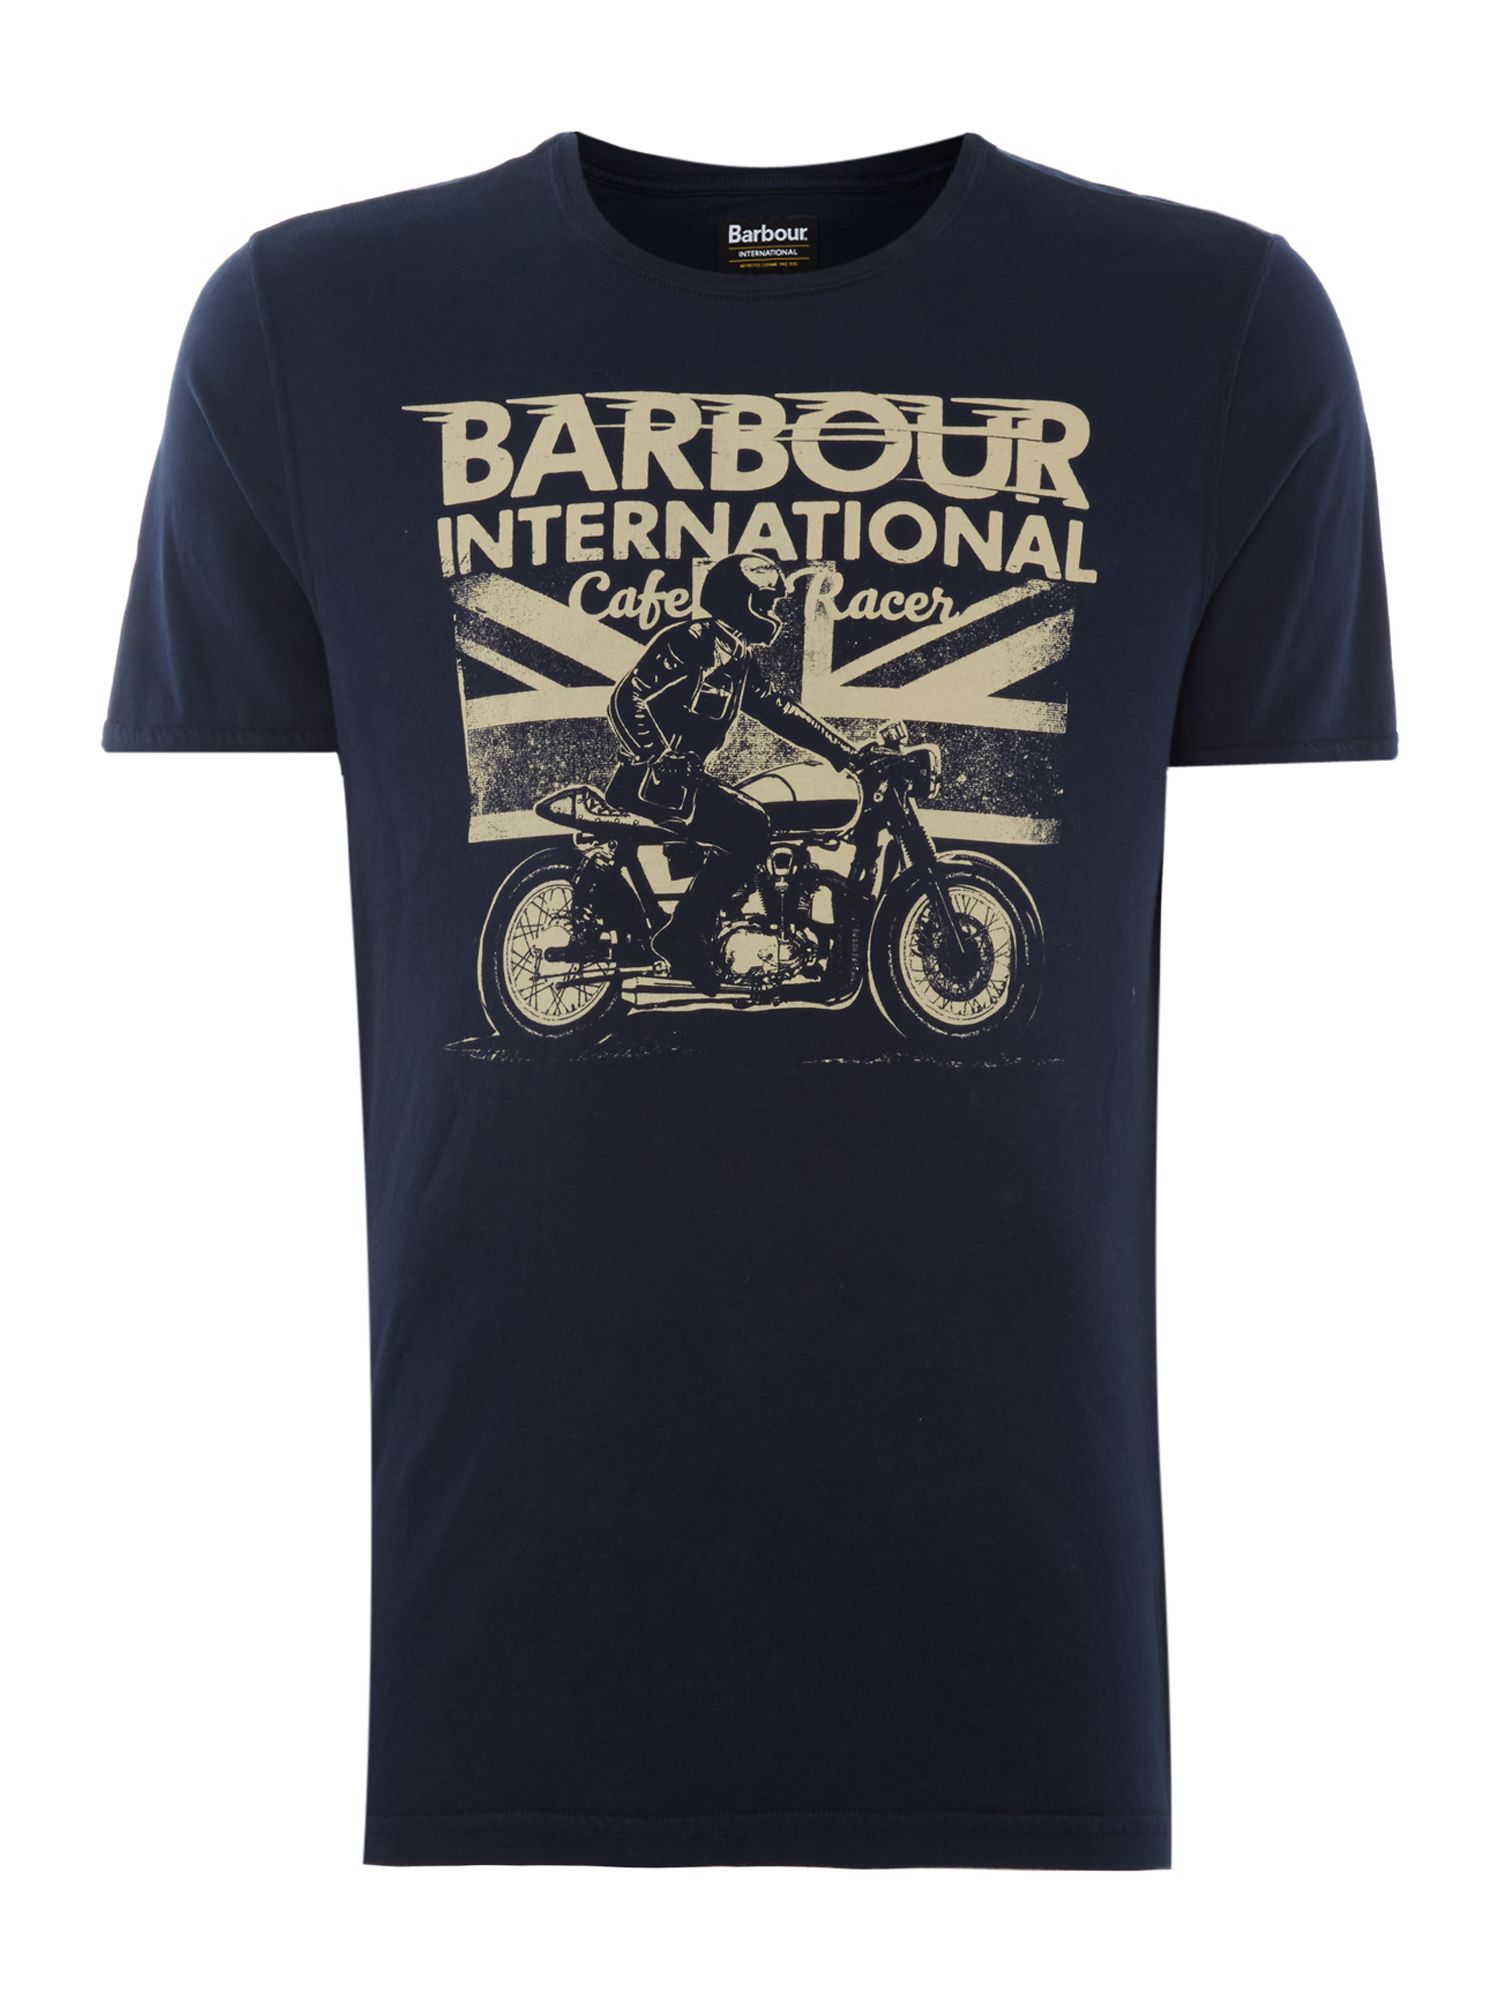 Men's Barbour Cruise short sleeve tshirt, Blue